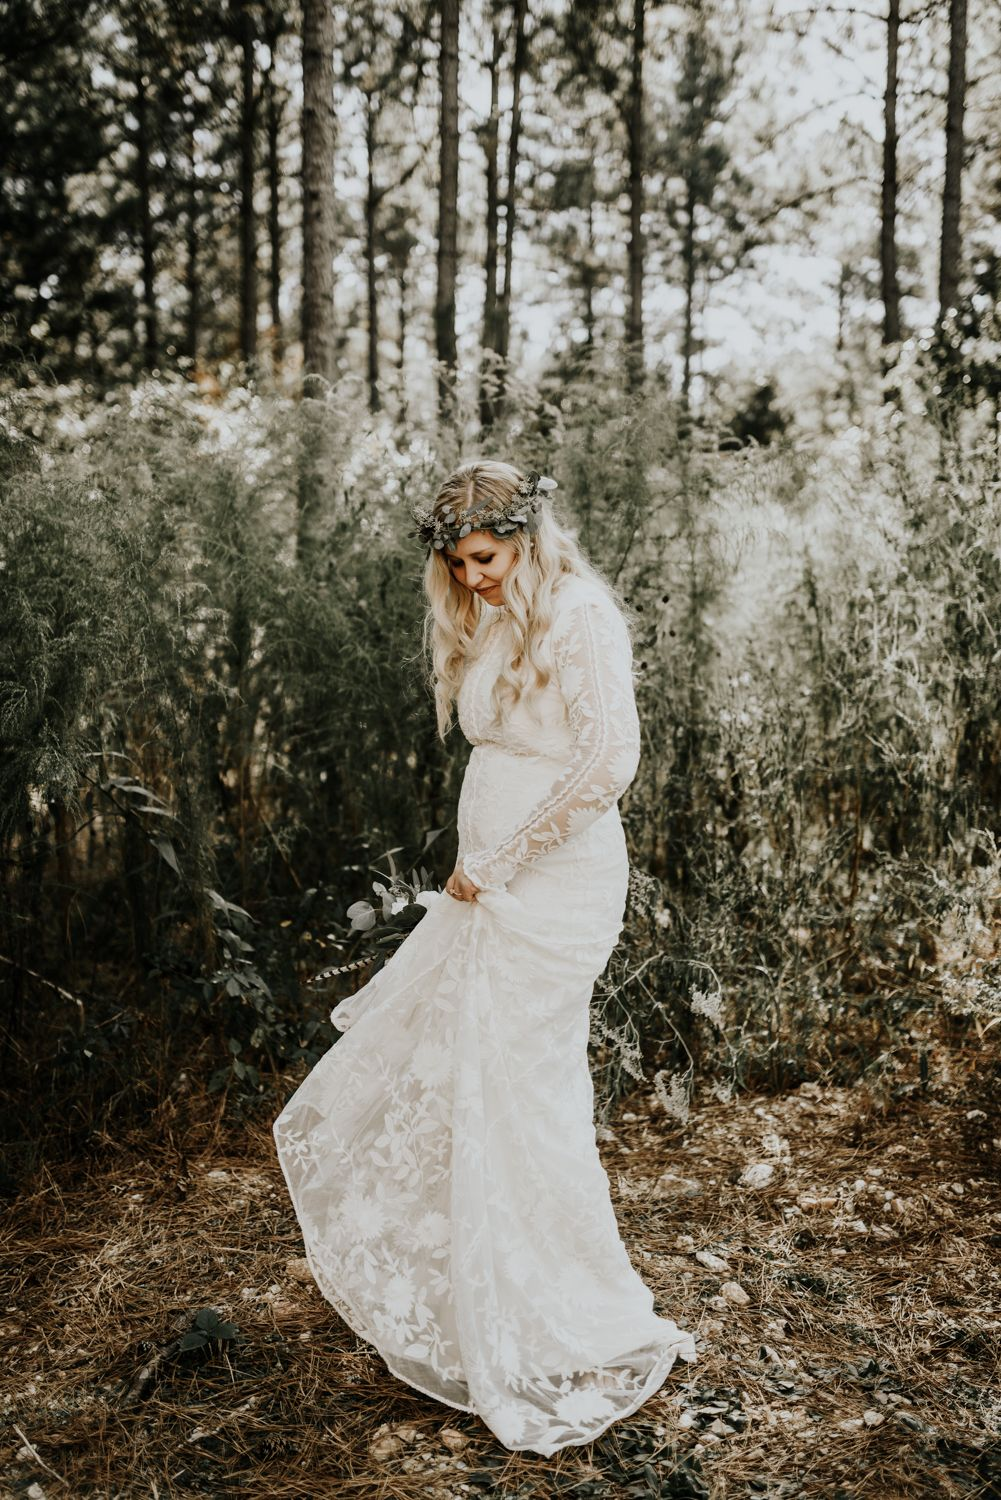 Indie boho bride intimate destination wedding photographer